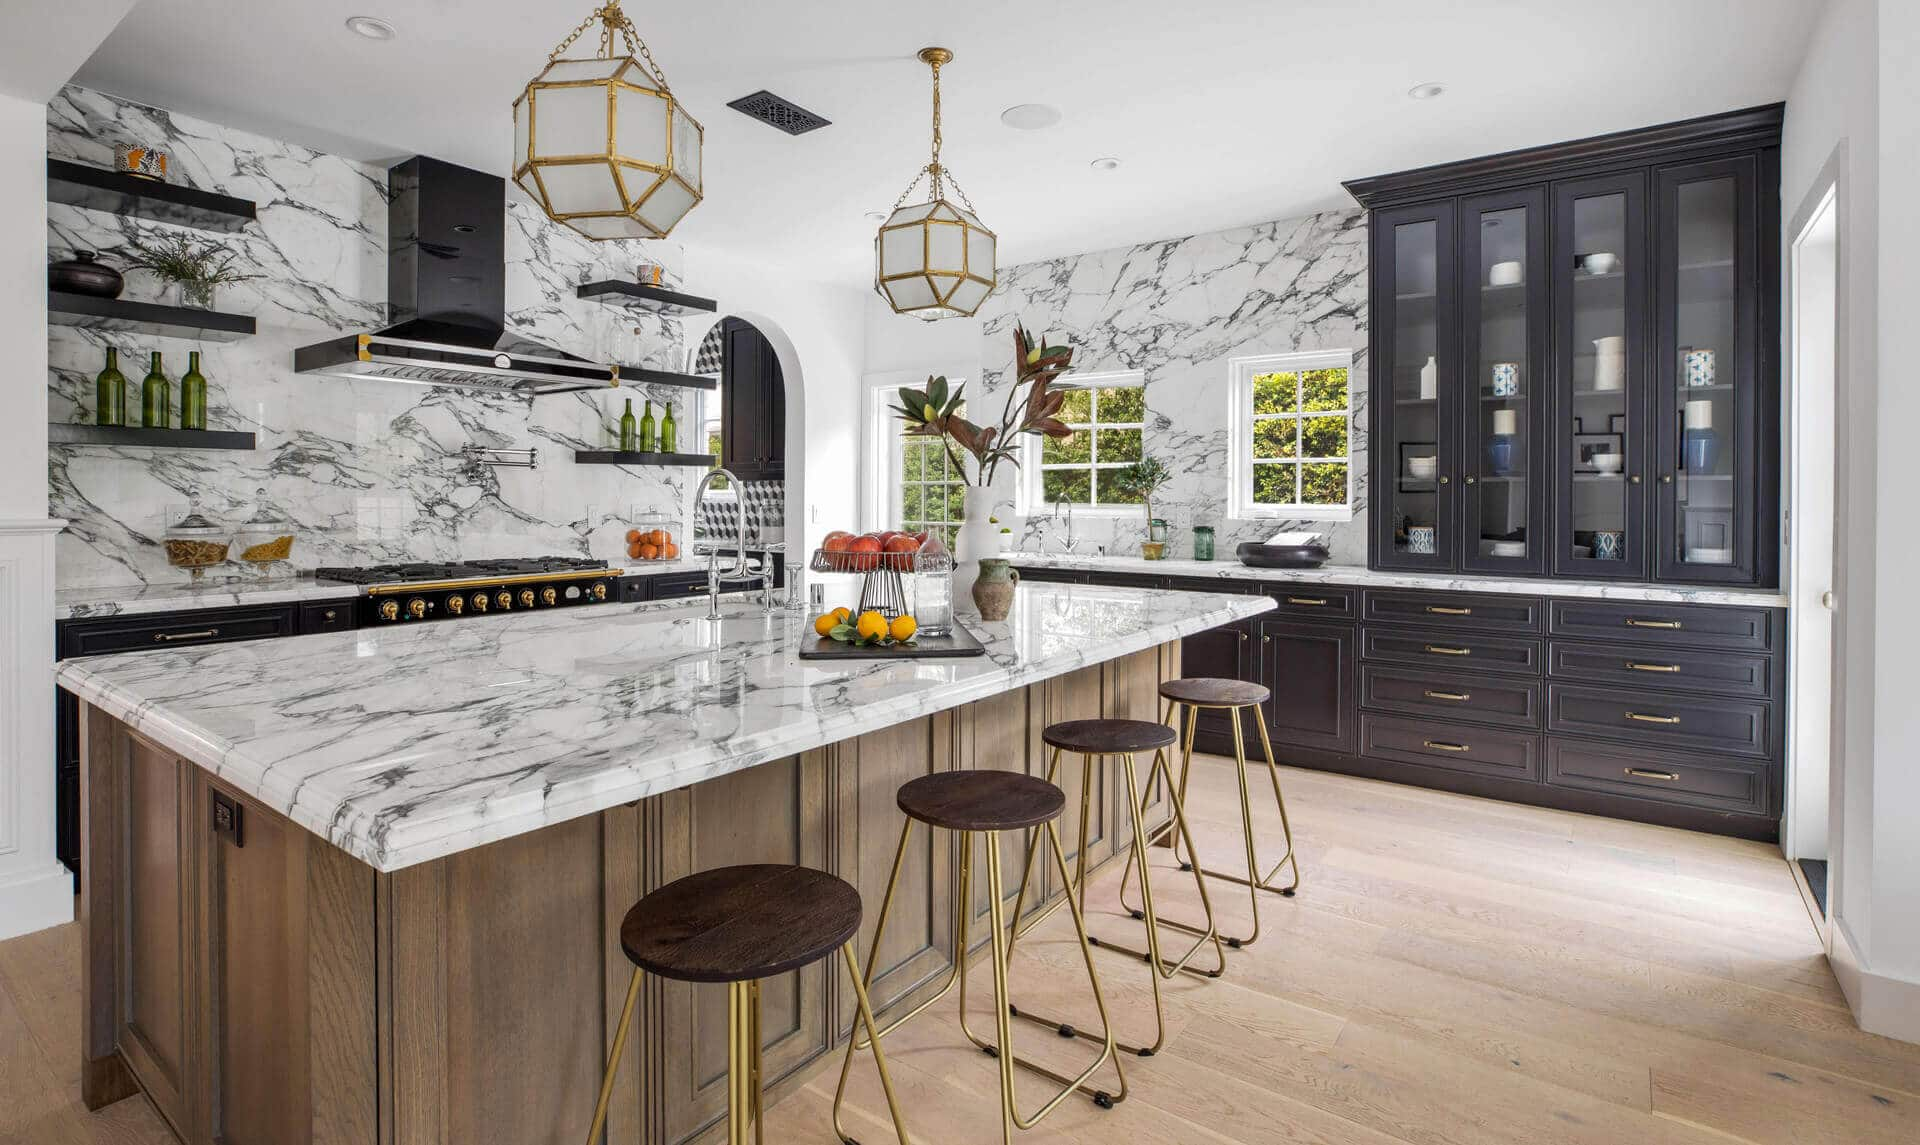 The Bienstock Group Updated Home